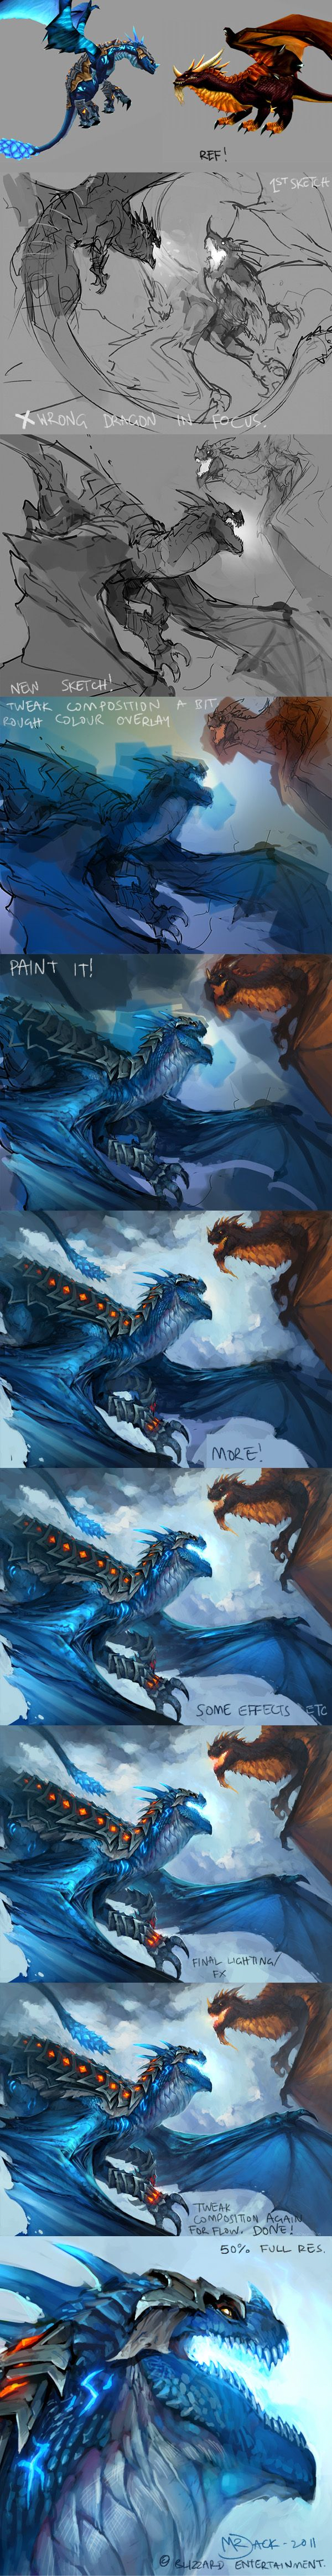 Skyrazor Process by Mr--Jack.deviantart.com on @deviantART